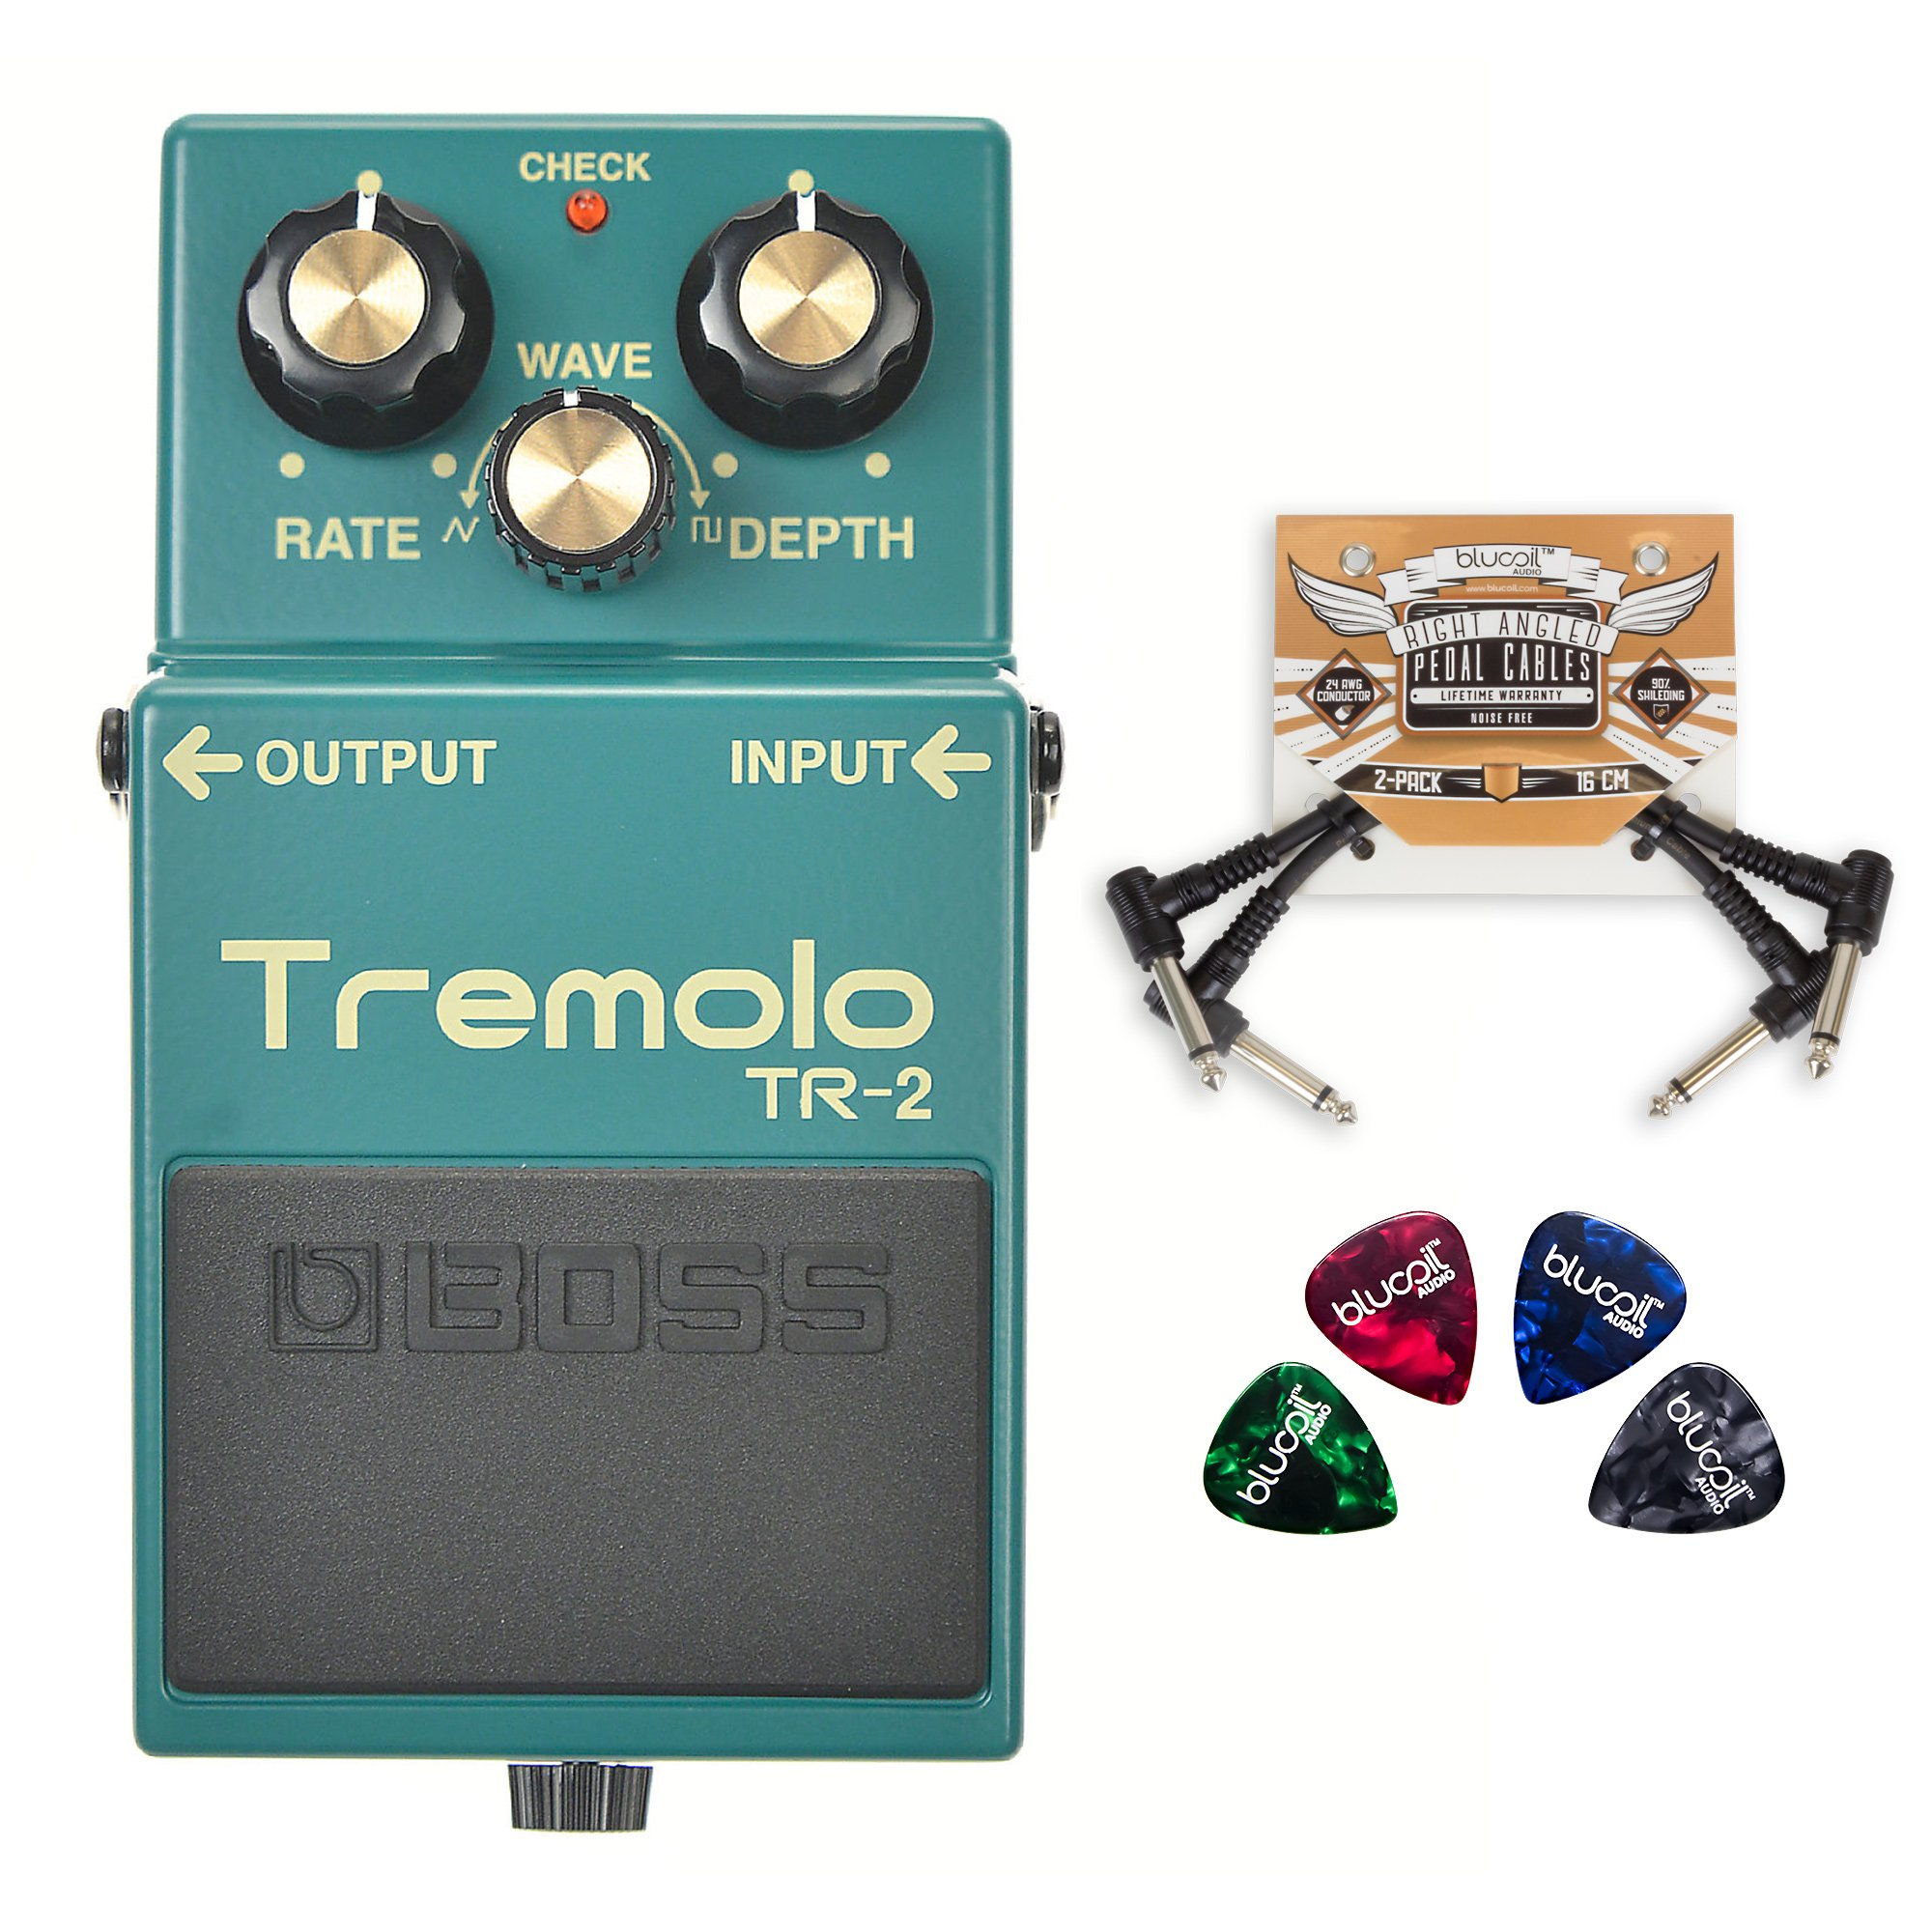 BOSS TR-2 Tremolo Pedal with Wave Control -INCLUDES- 2-Pack of Blucoil Pedal Patch Cables AND 4 Guitar Picks by blucoil